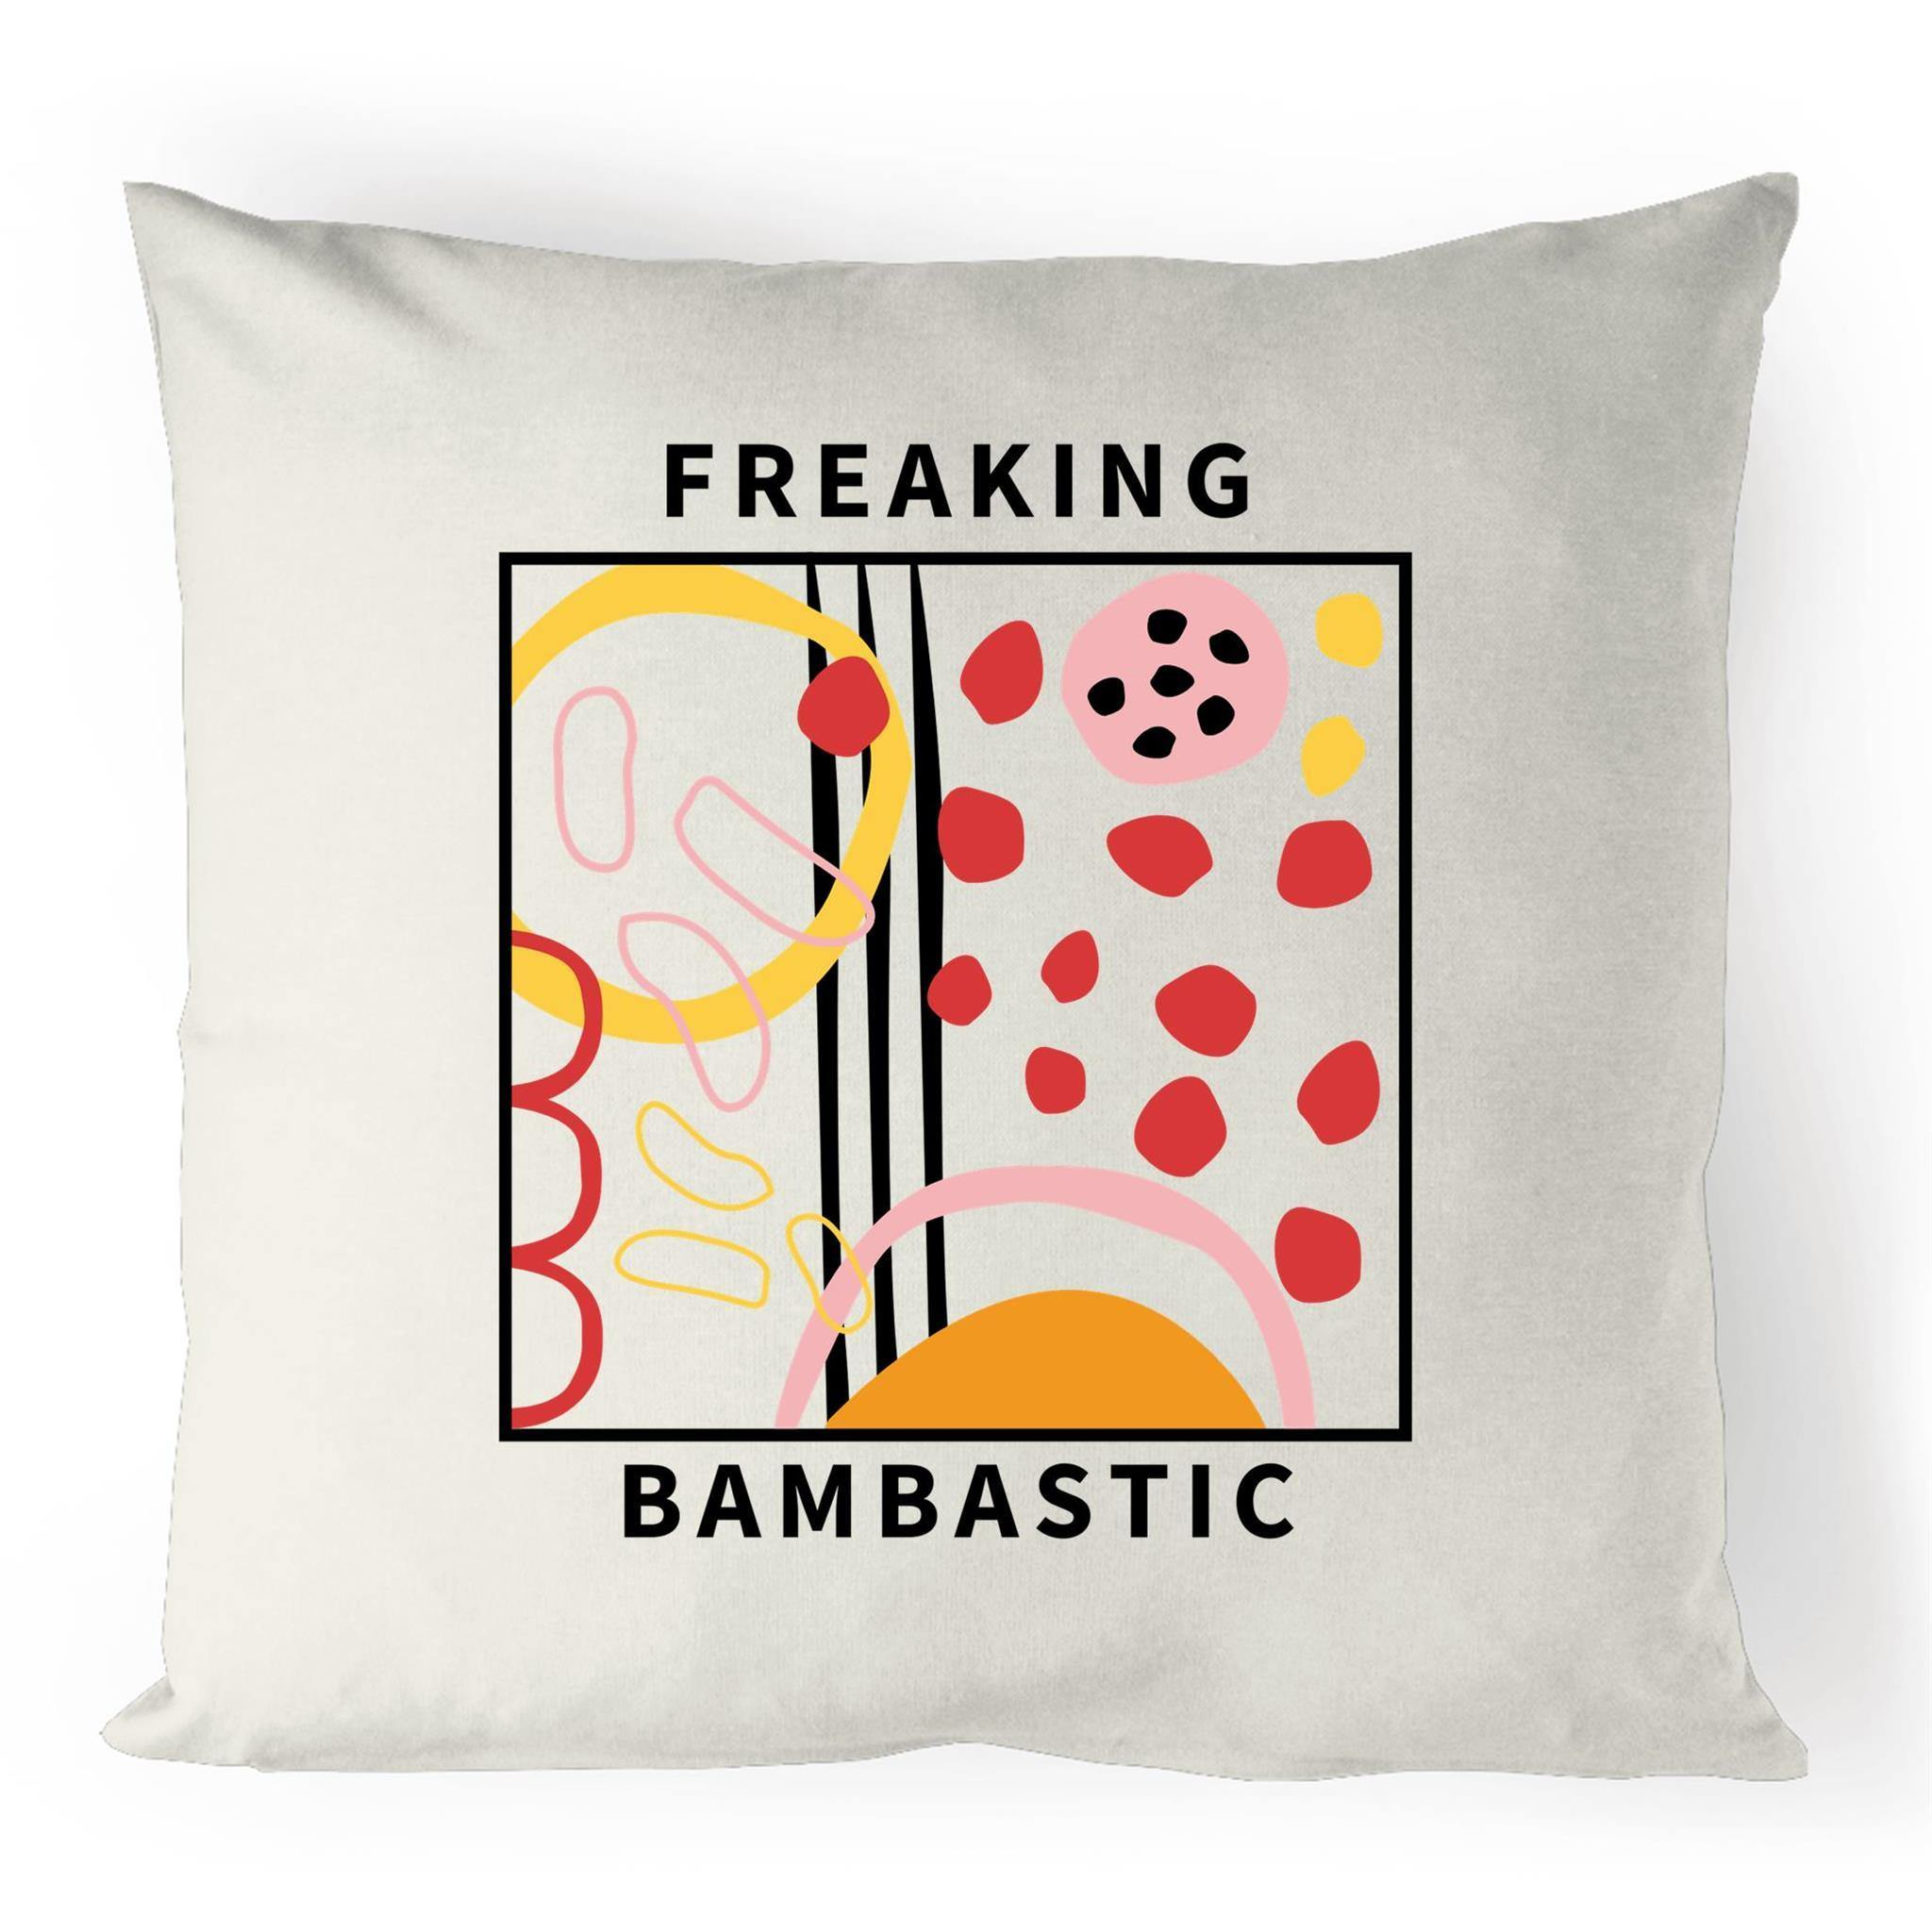 Freaking Bambastic Linen Cushion Cover.